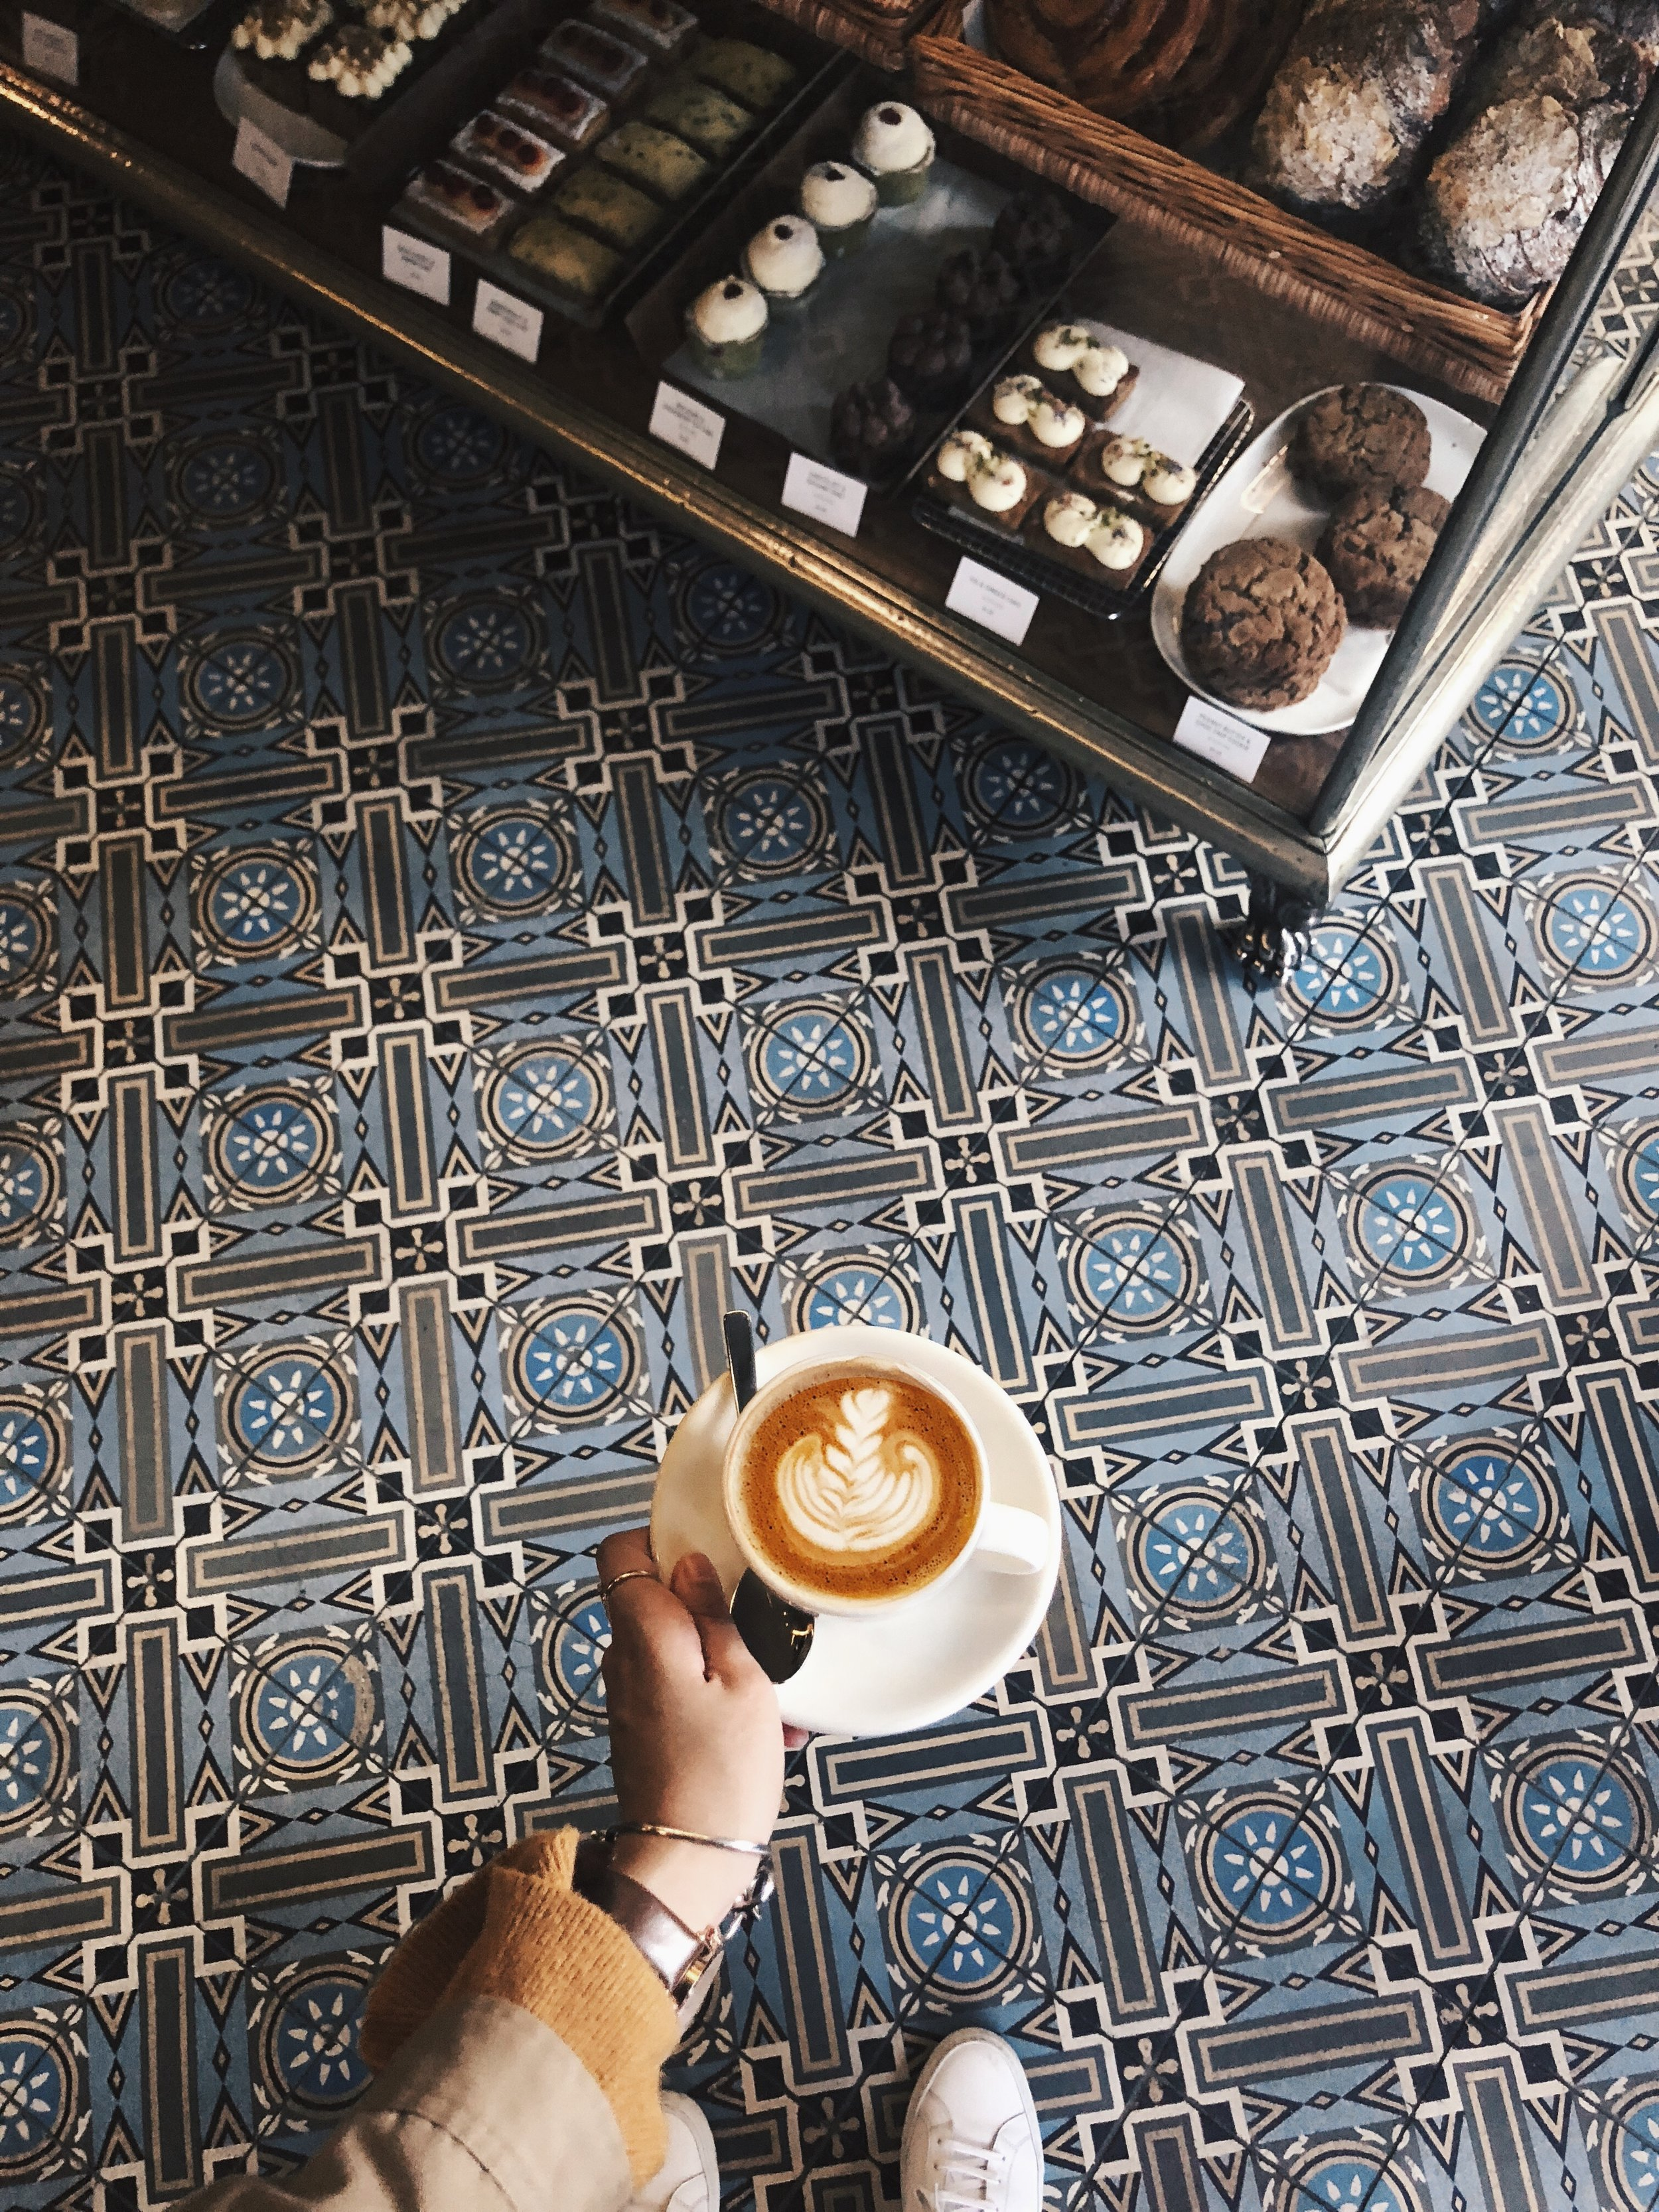 ⩕ ⩚ D U K E S ⩚ /  Dukes Coffee Roasters   A stylish coffee shop on Flinders Lane in CBD which always get so busy every mornings. Other than the great flat white, they also offered a wide variety of pastries and desserts! Don't forget to look down and admire these pretty blue floor tiles.  📍 247 Flinders Ln, Melbourne VIC